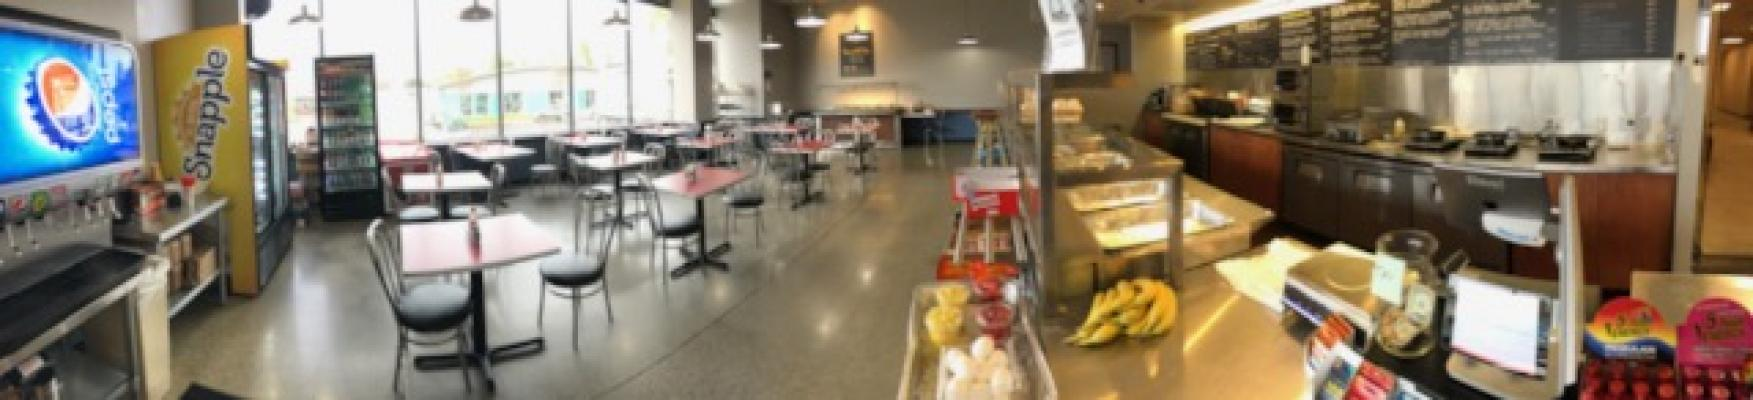 South San Francisco Cafe Business For Sale